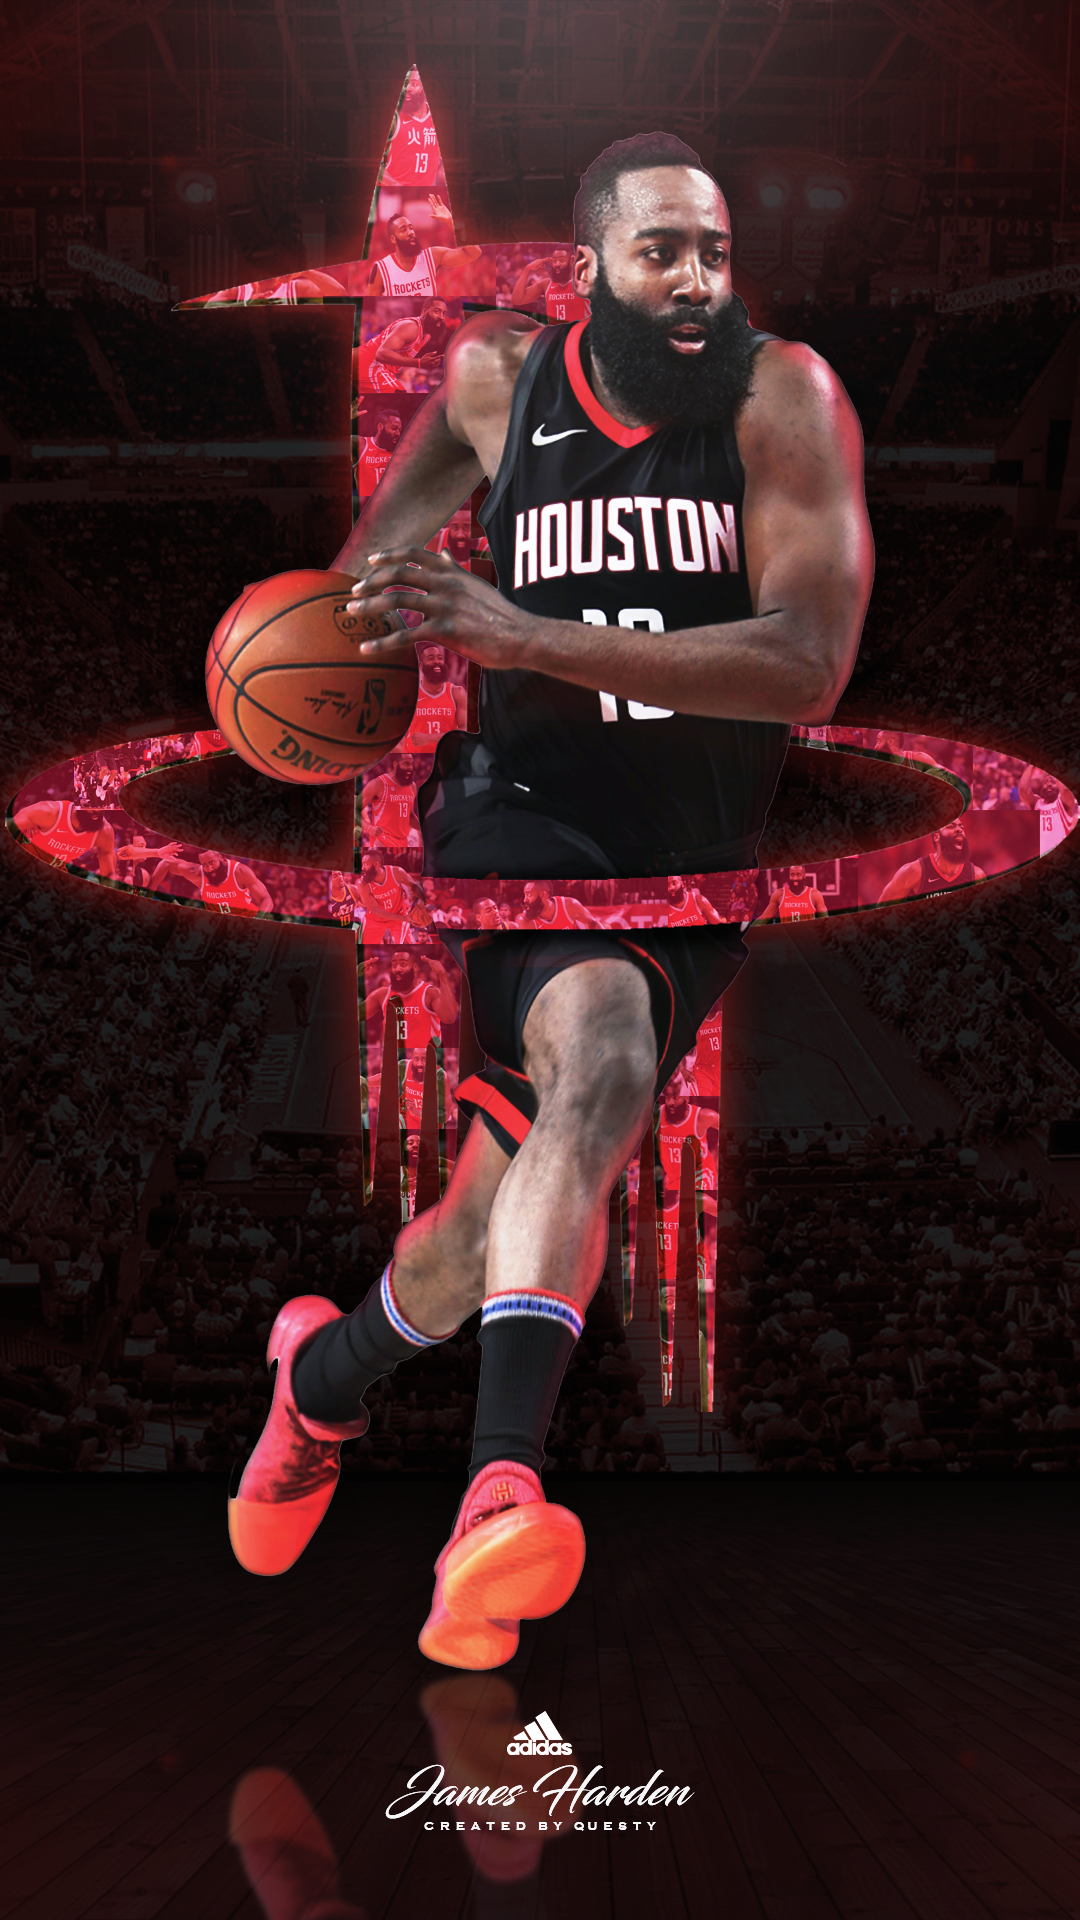 James Harden Background Image in 2020 Nba basketball art